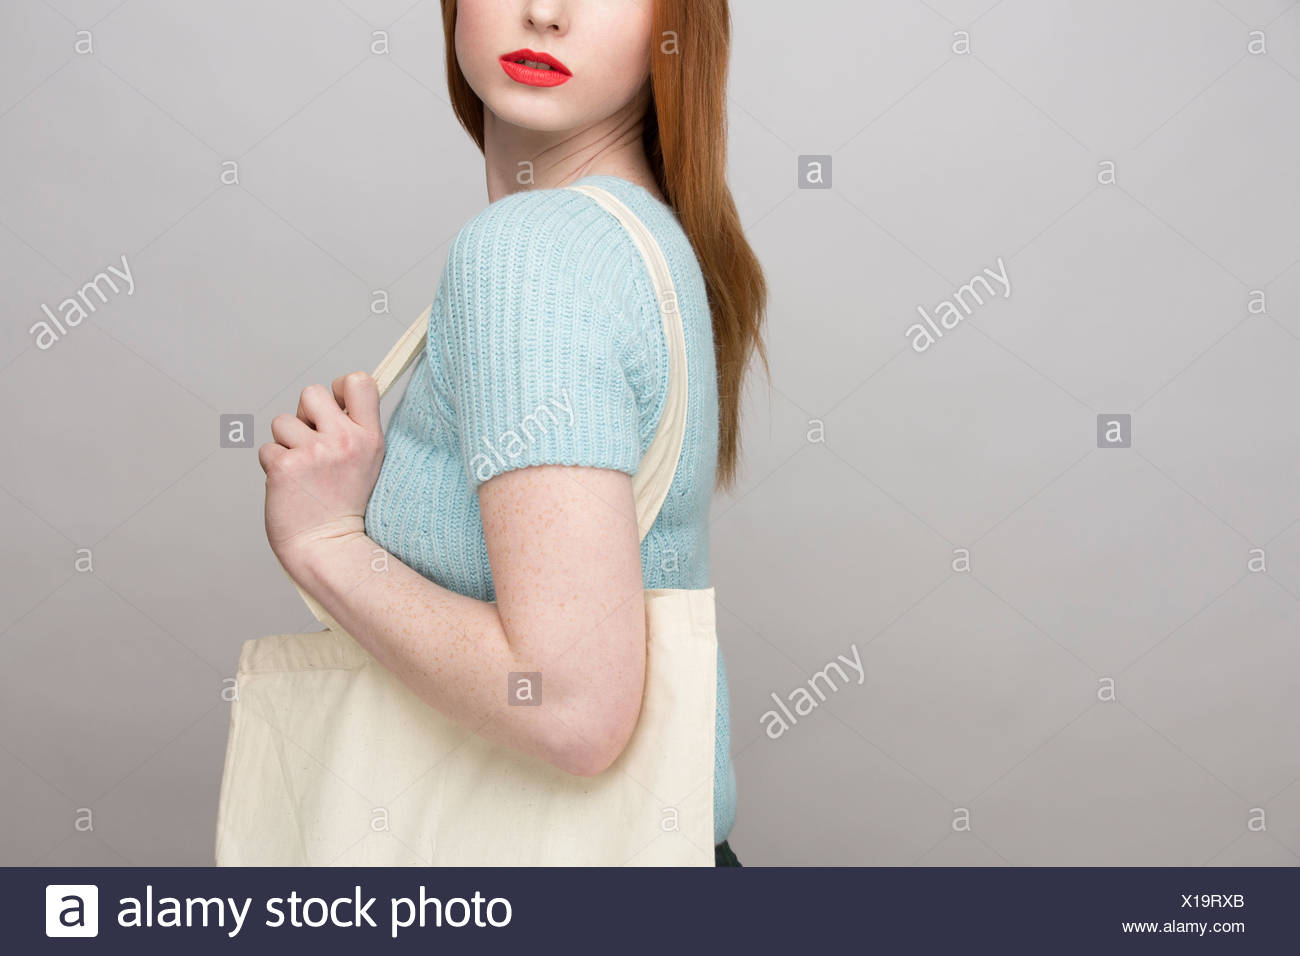 Portrait of young woman holding Shopping bag Banque D'Images